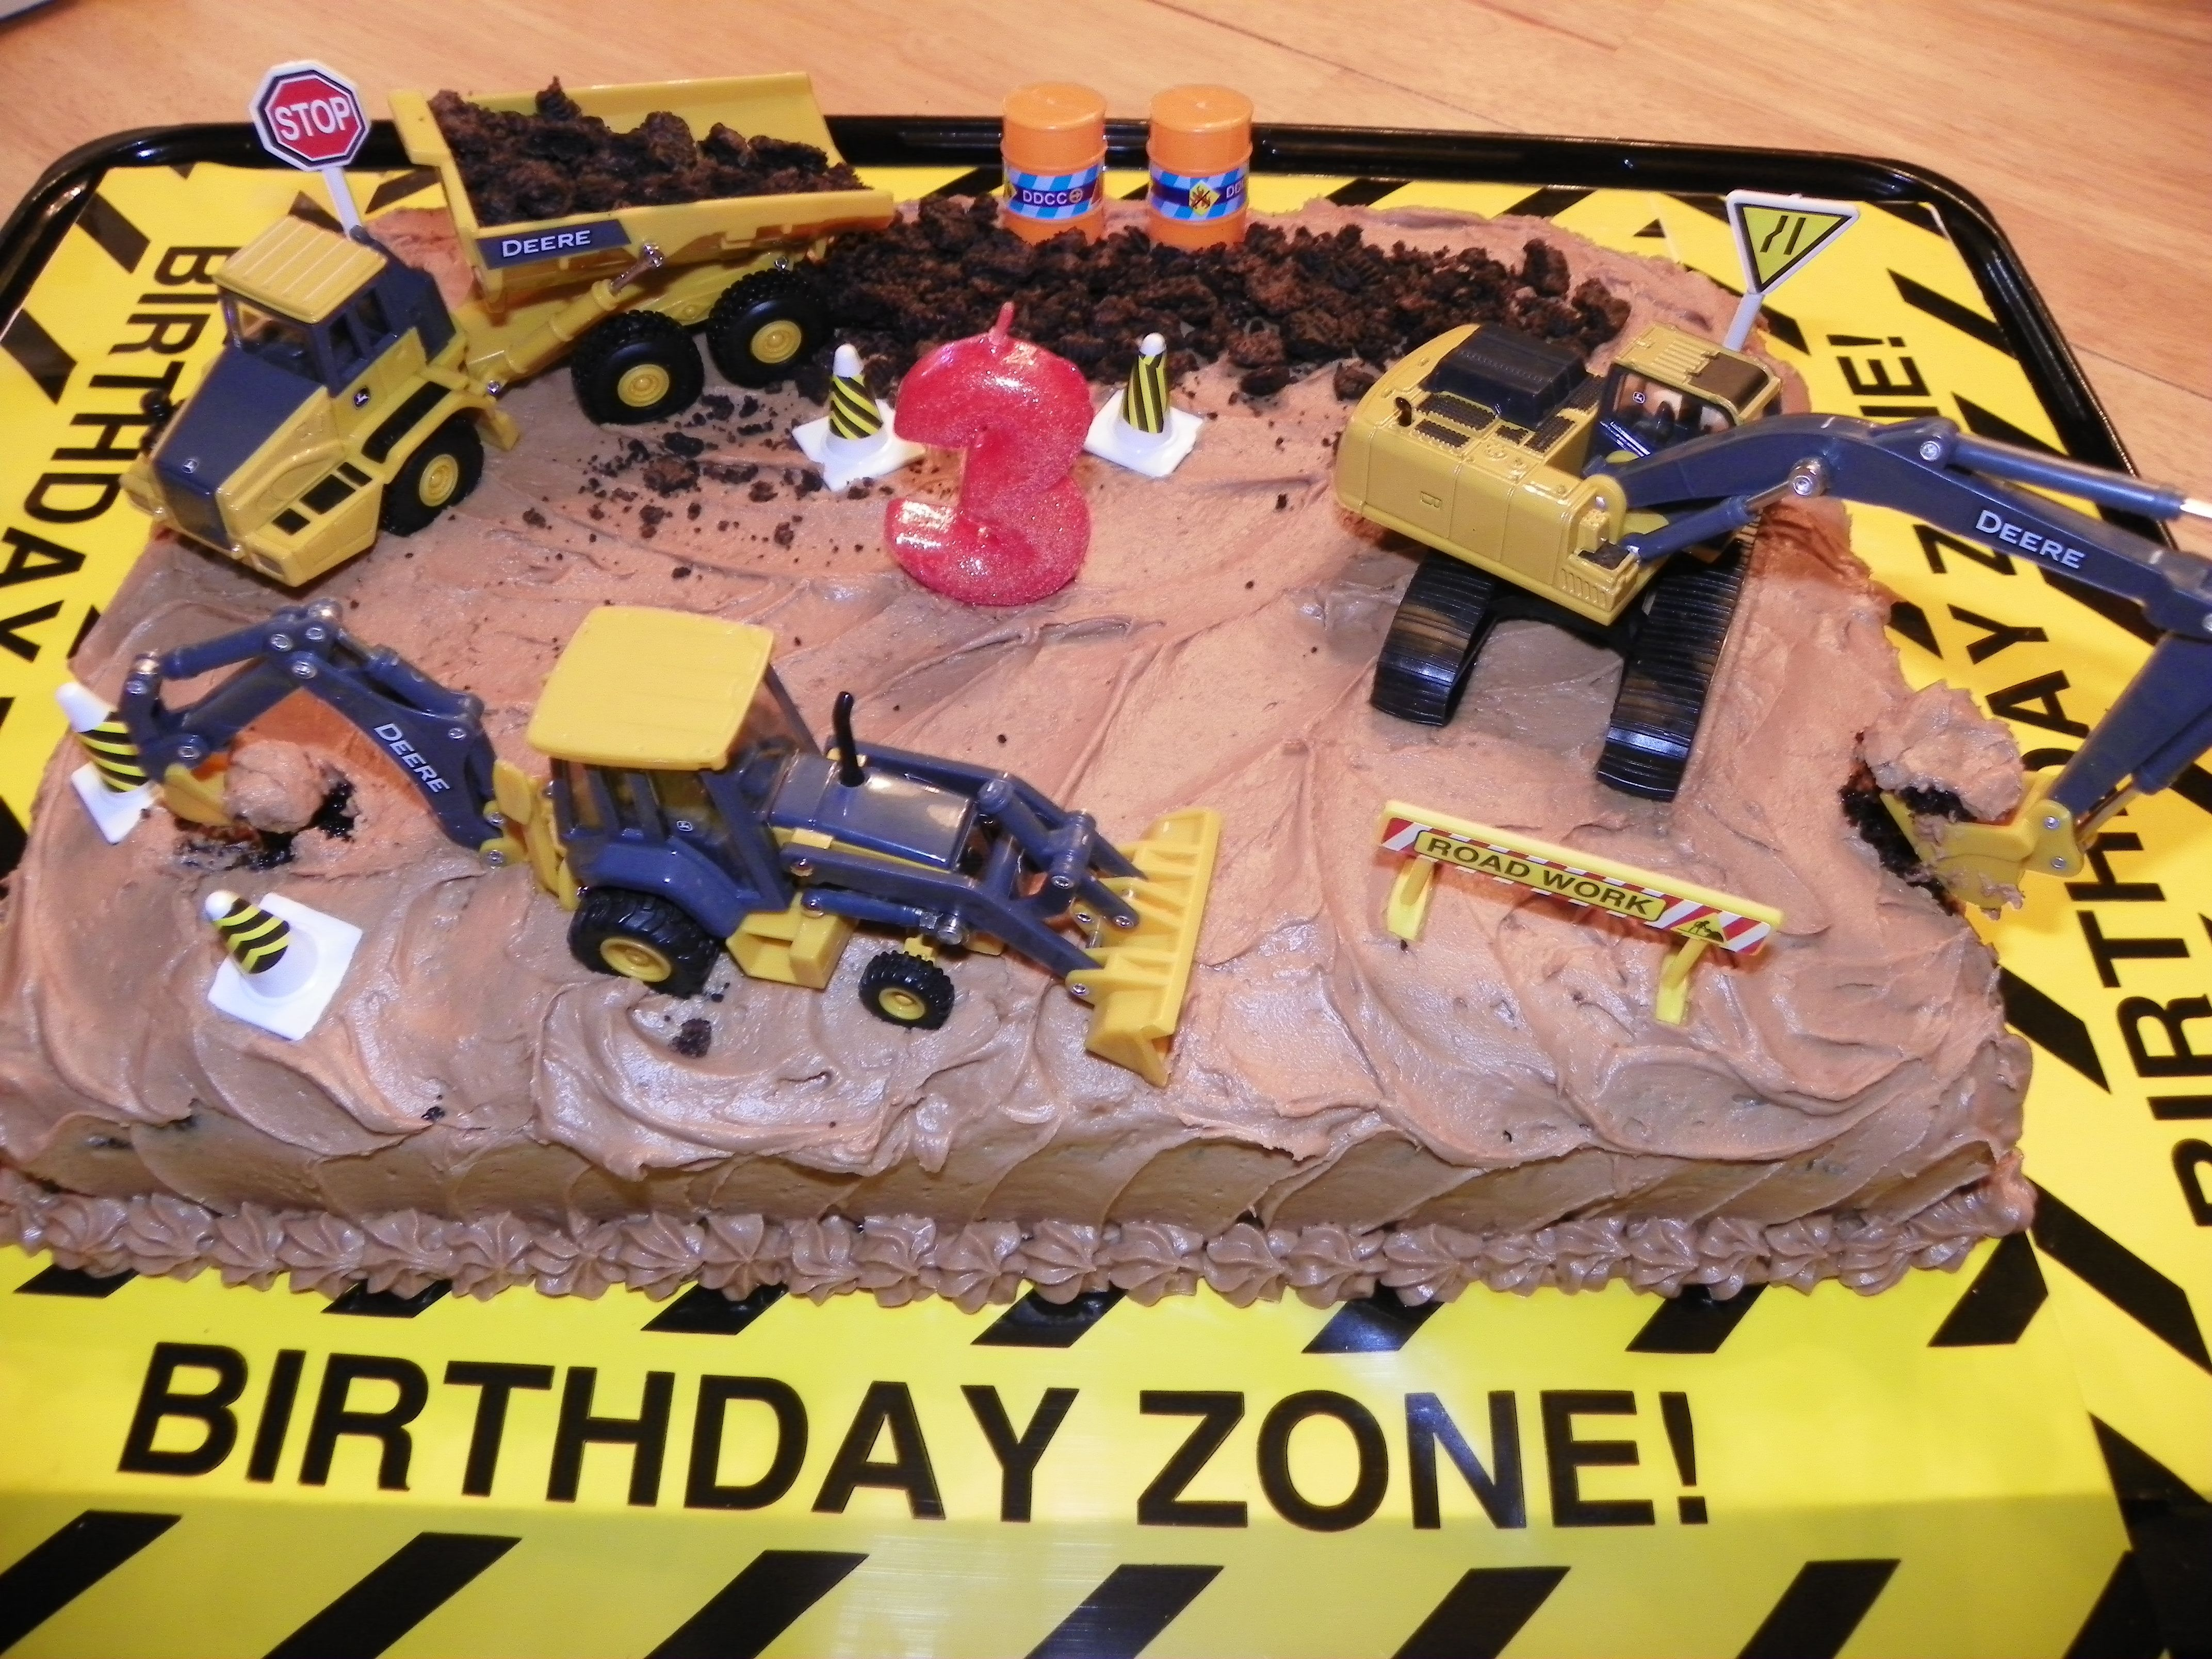 Construction cake for 3rd Birthday Was great fun making a